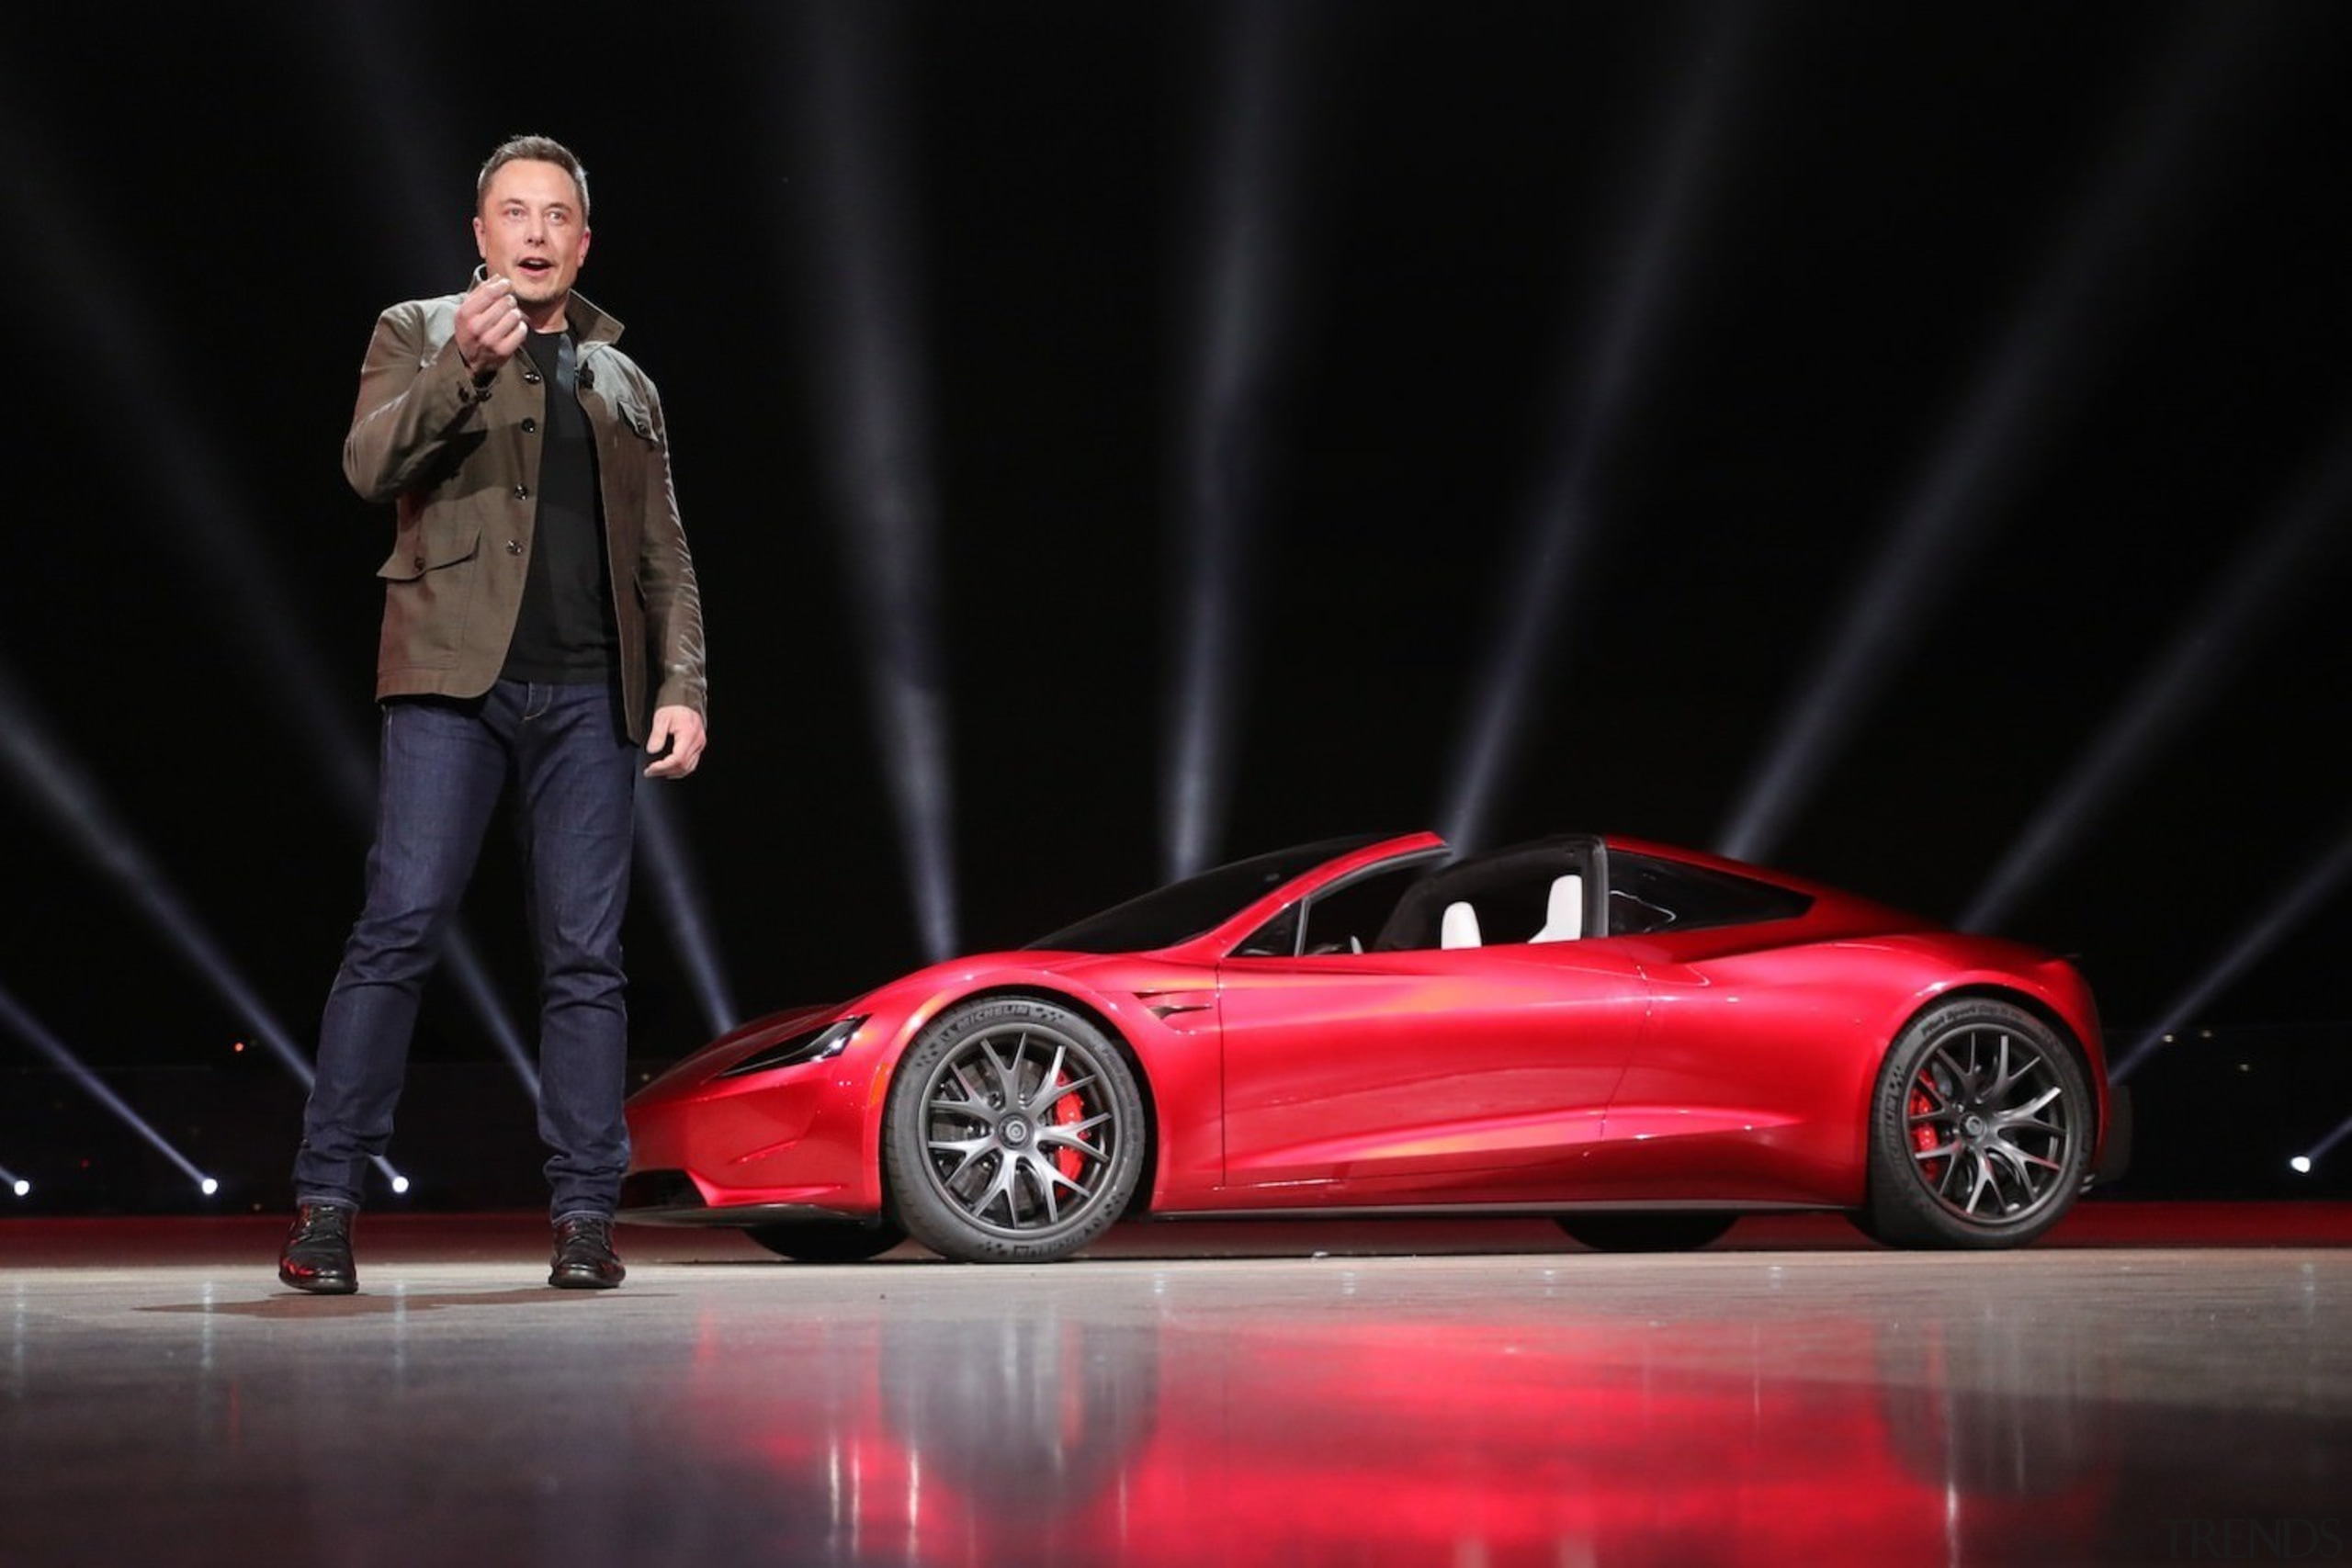 Tesla's new Roadster - Tesla's new Roadster - auto show, automotive design, car, concept car, land vehicle, luxury vehicle, motor vehicle, performance car, personal luxury car, sports car, supercar, vehicle, black